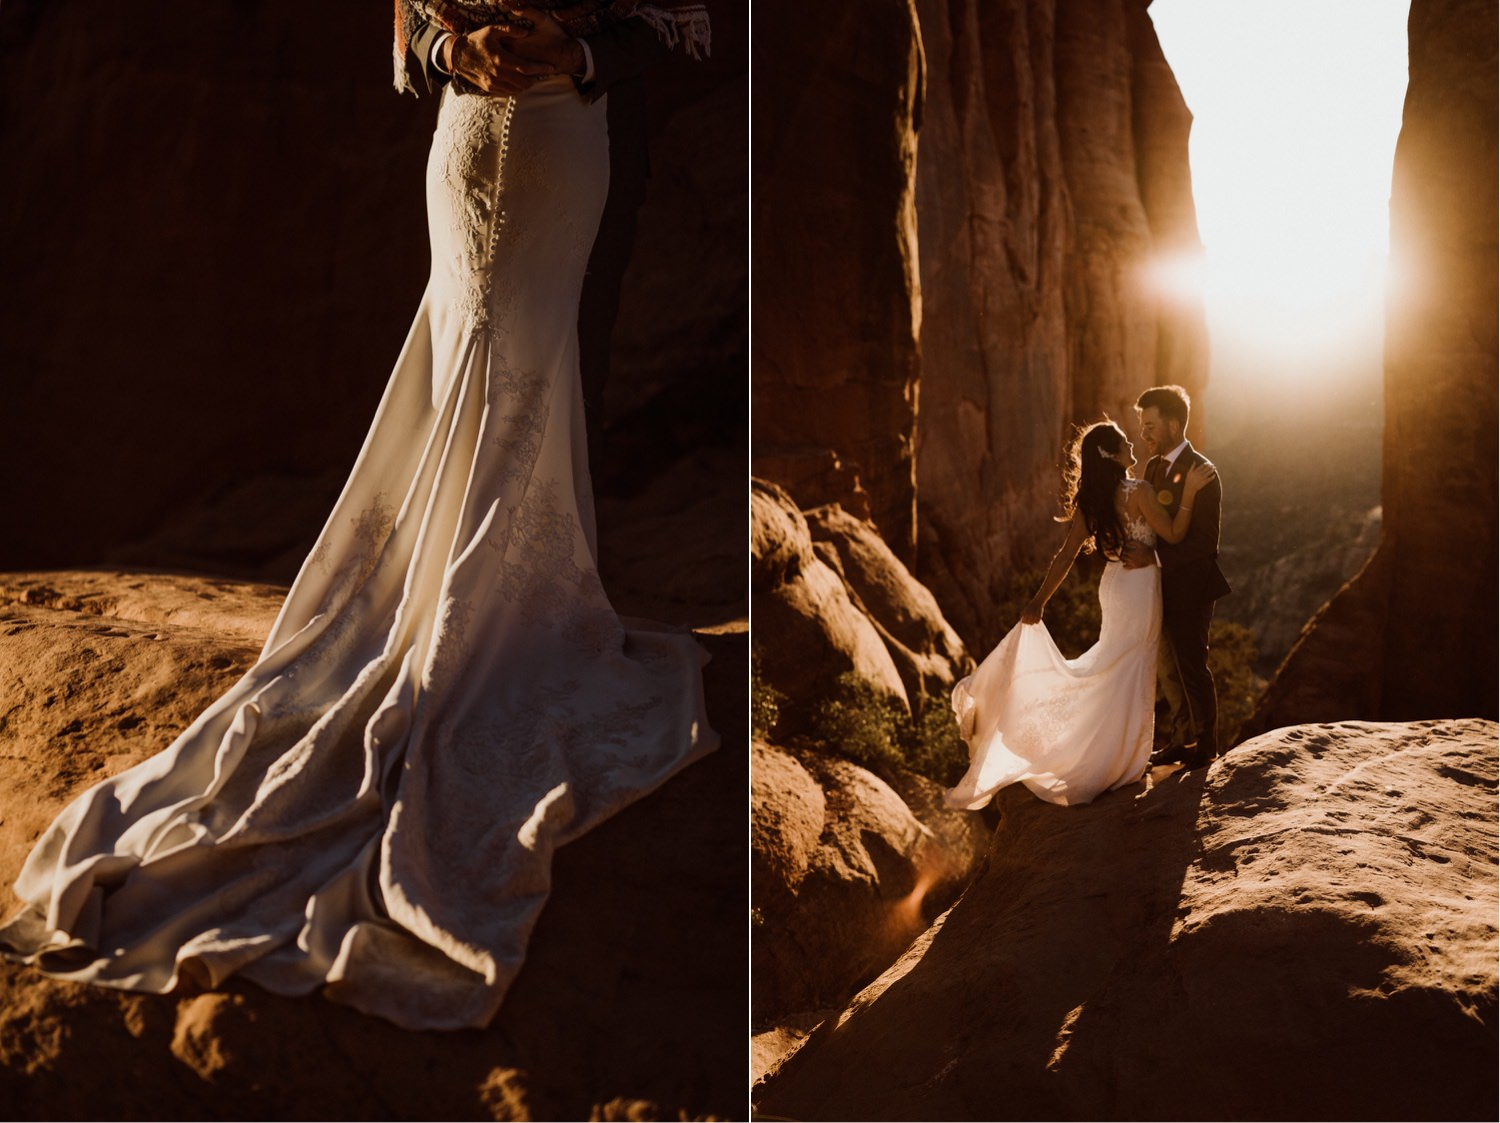 72_intimate-sedona-arizona-wedding-99_intimate-sedona-arizona-wedding-103.jpg